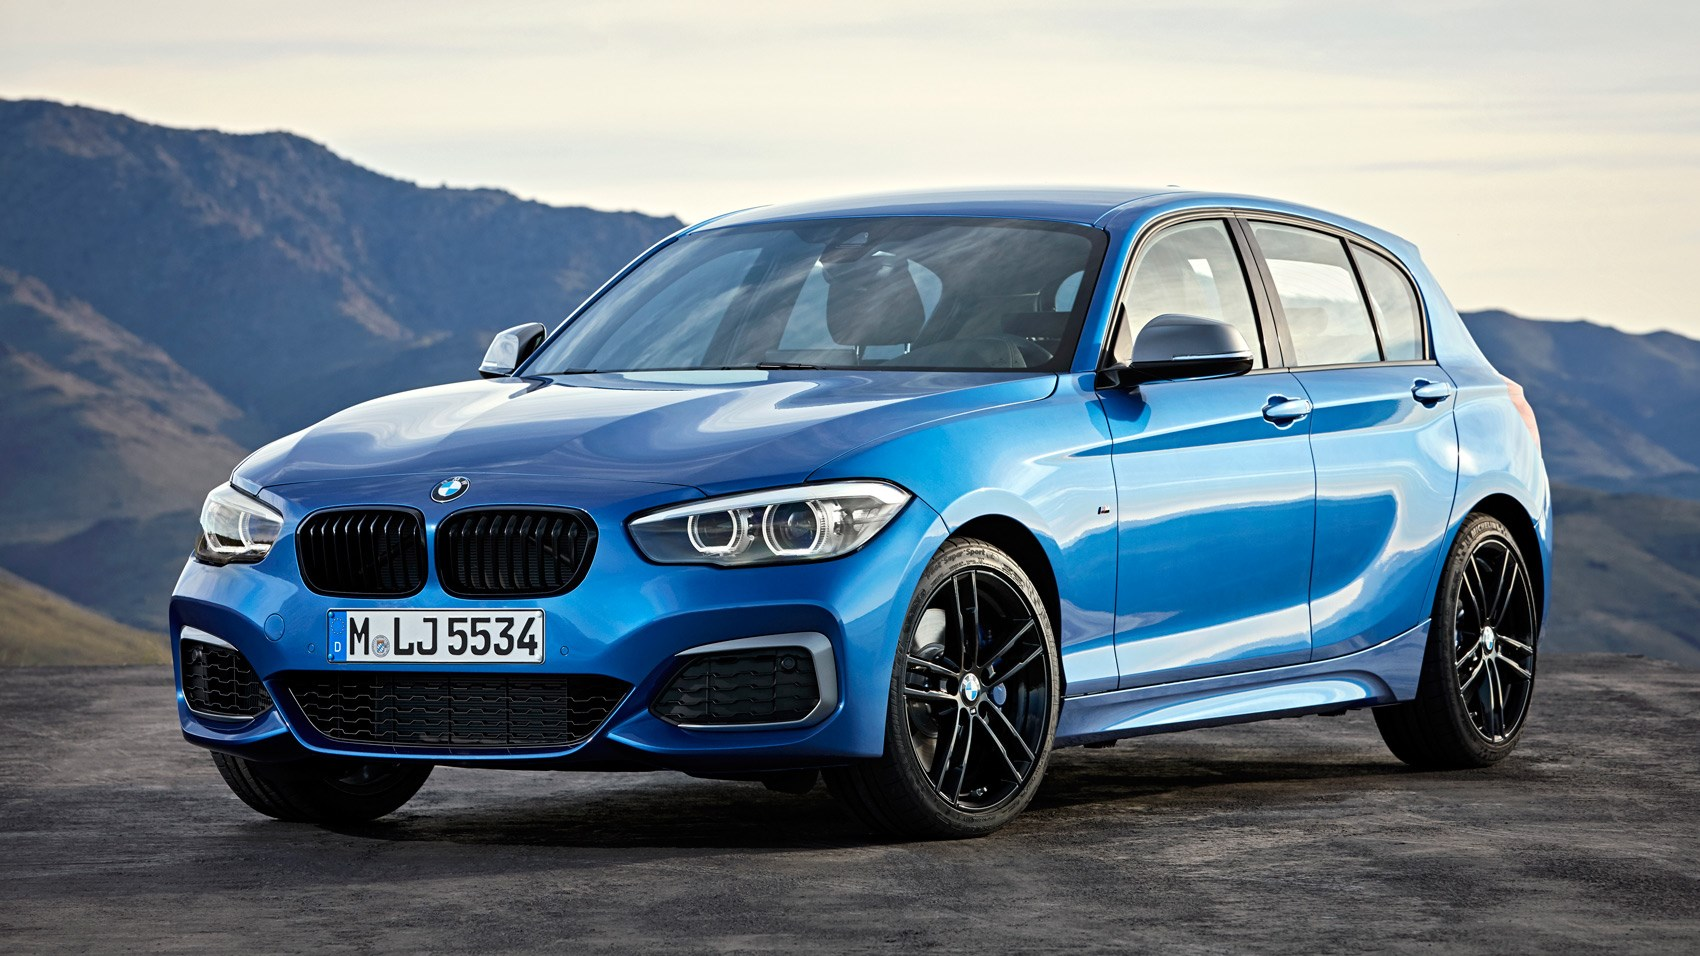 BMW M140i - crazy fast and insanely grunty for the price